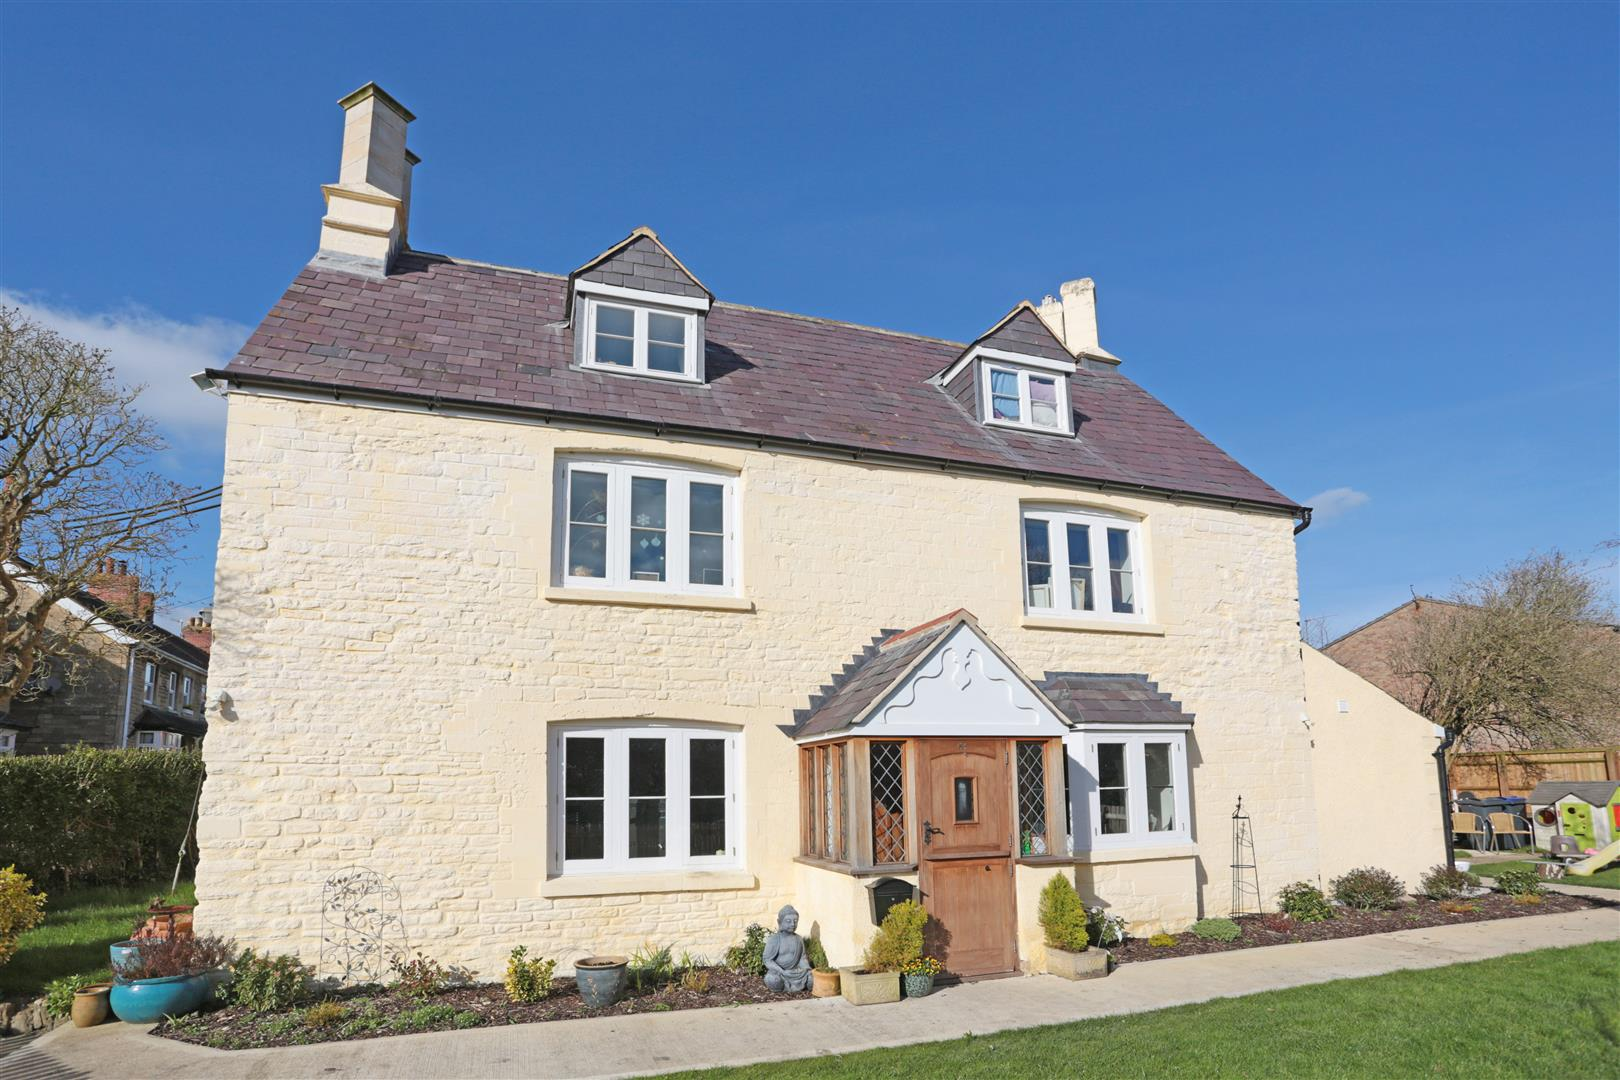 4 Bedrooms House for sale in The Pippin, Calne